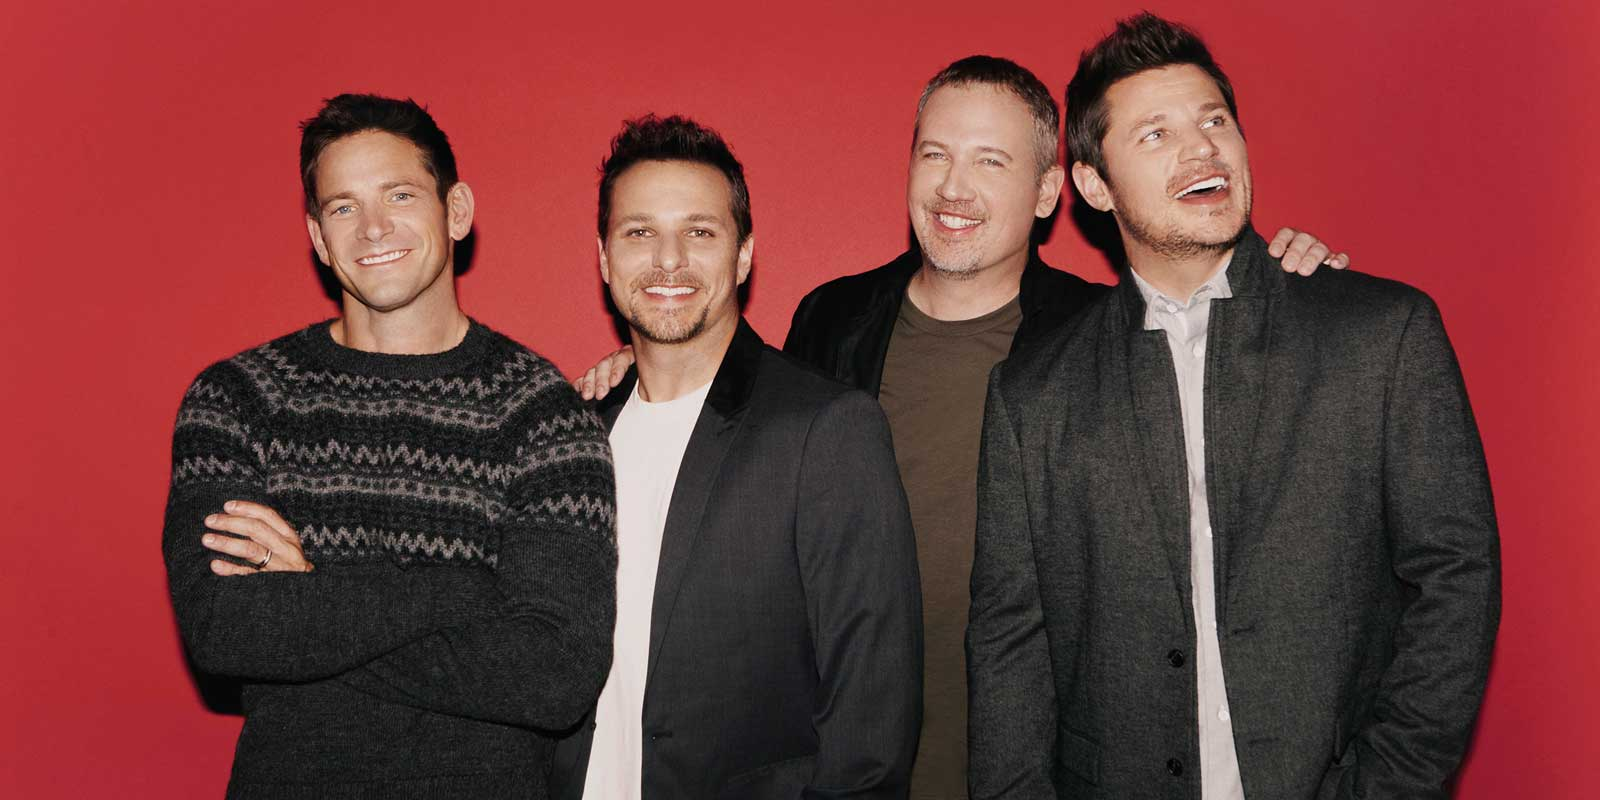 The 90s boys band 98 Degrees poses in front of a solid red background.